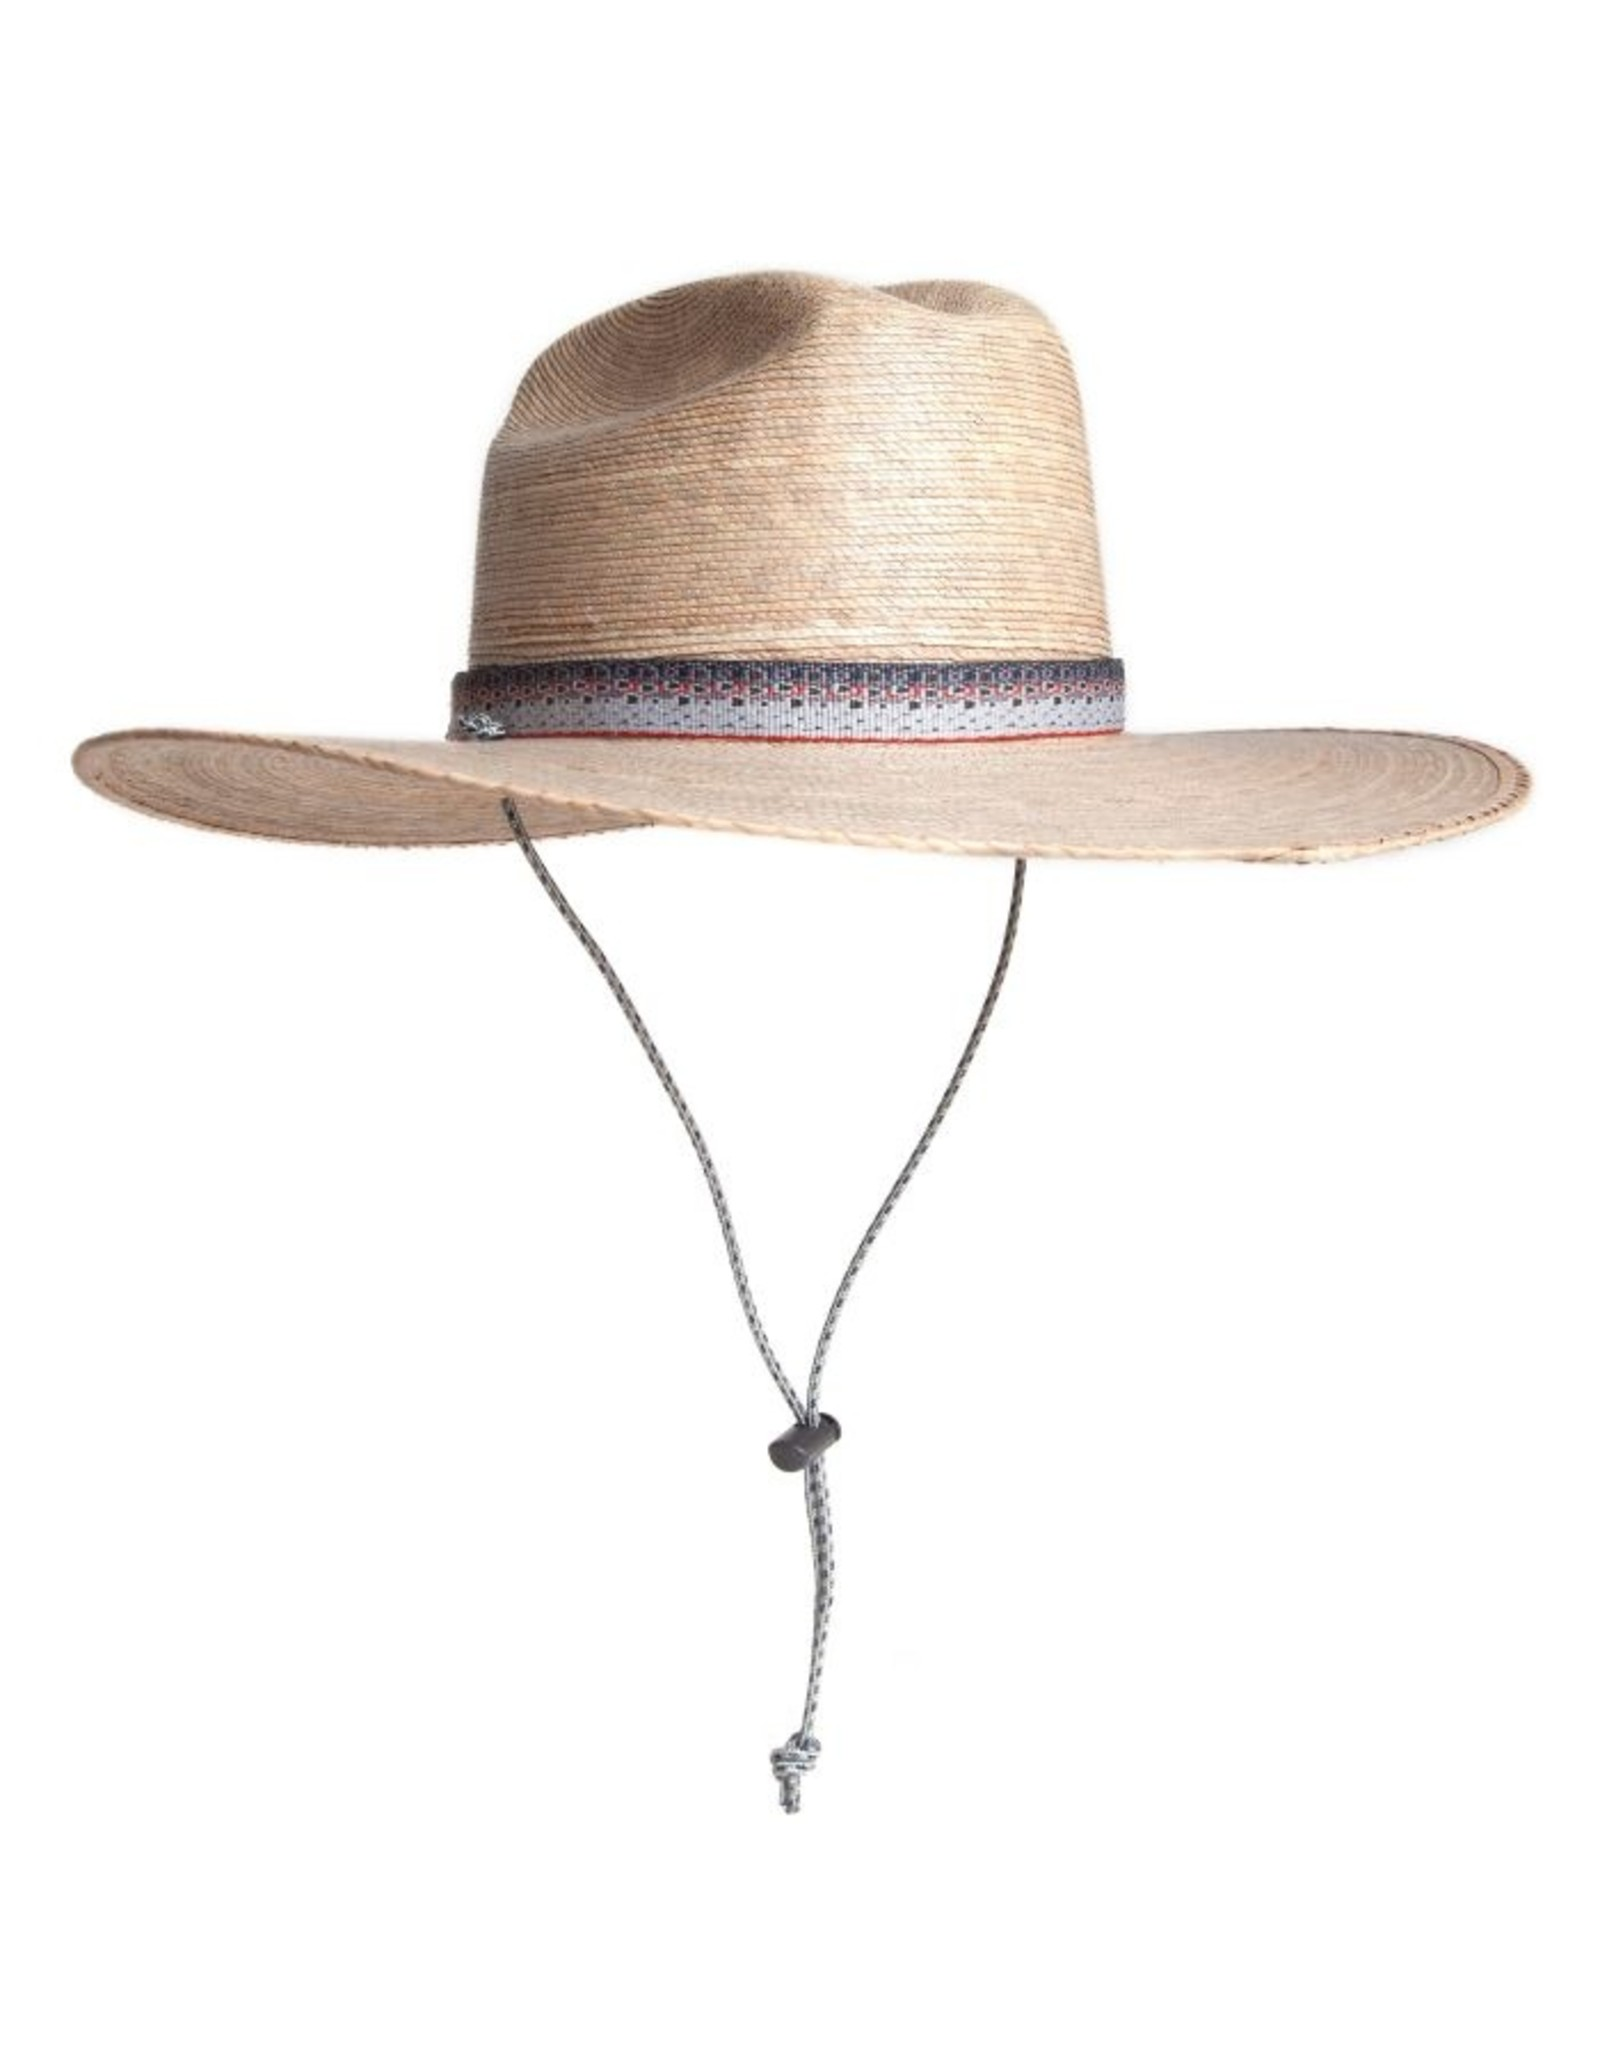 Fishpond Fishpond - Lowcountry Hat